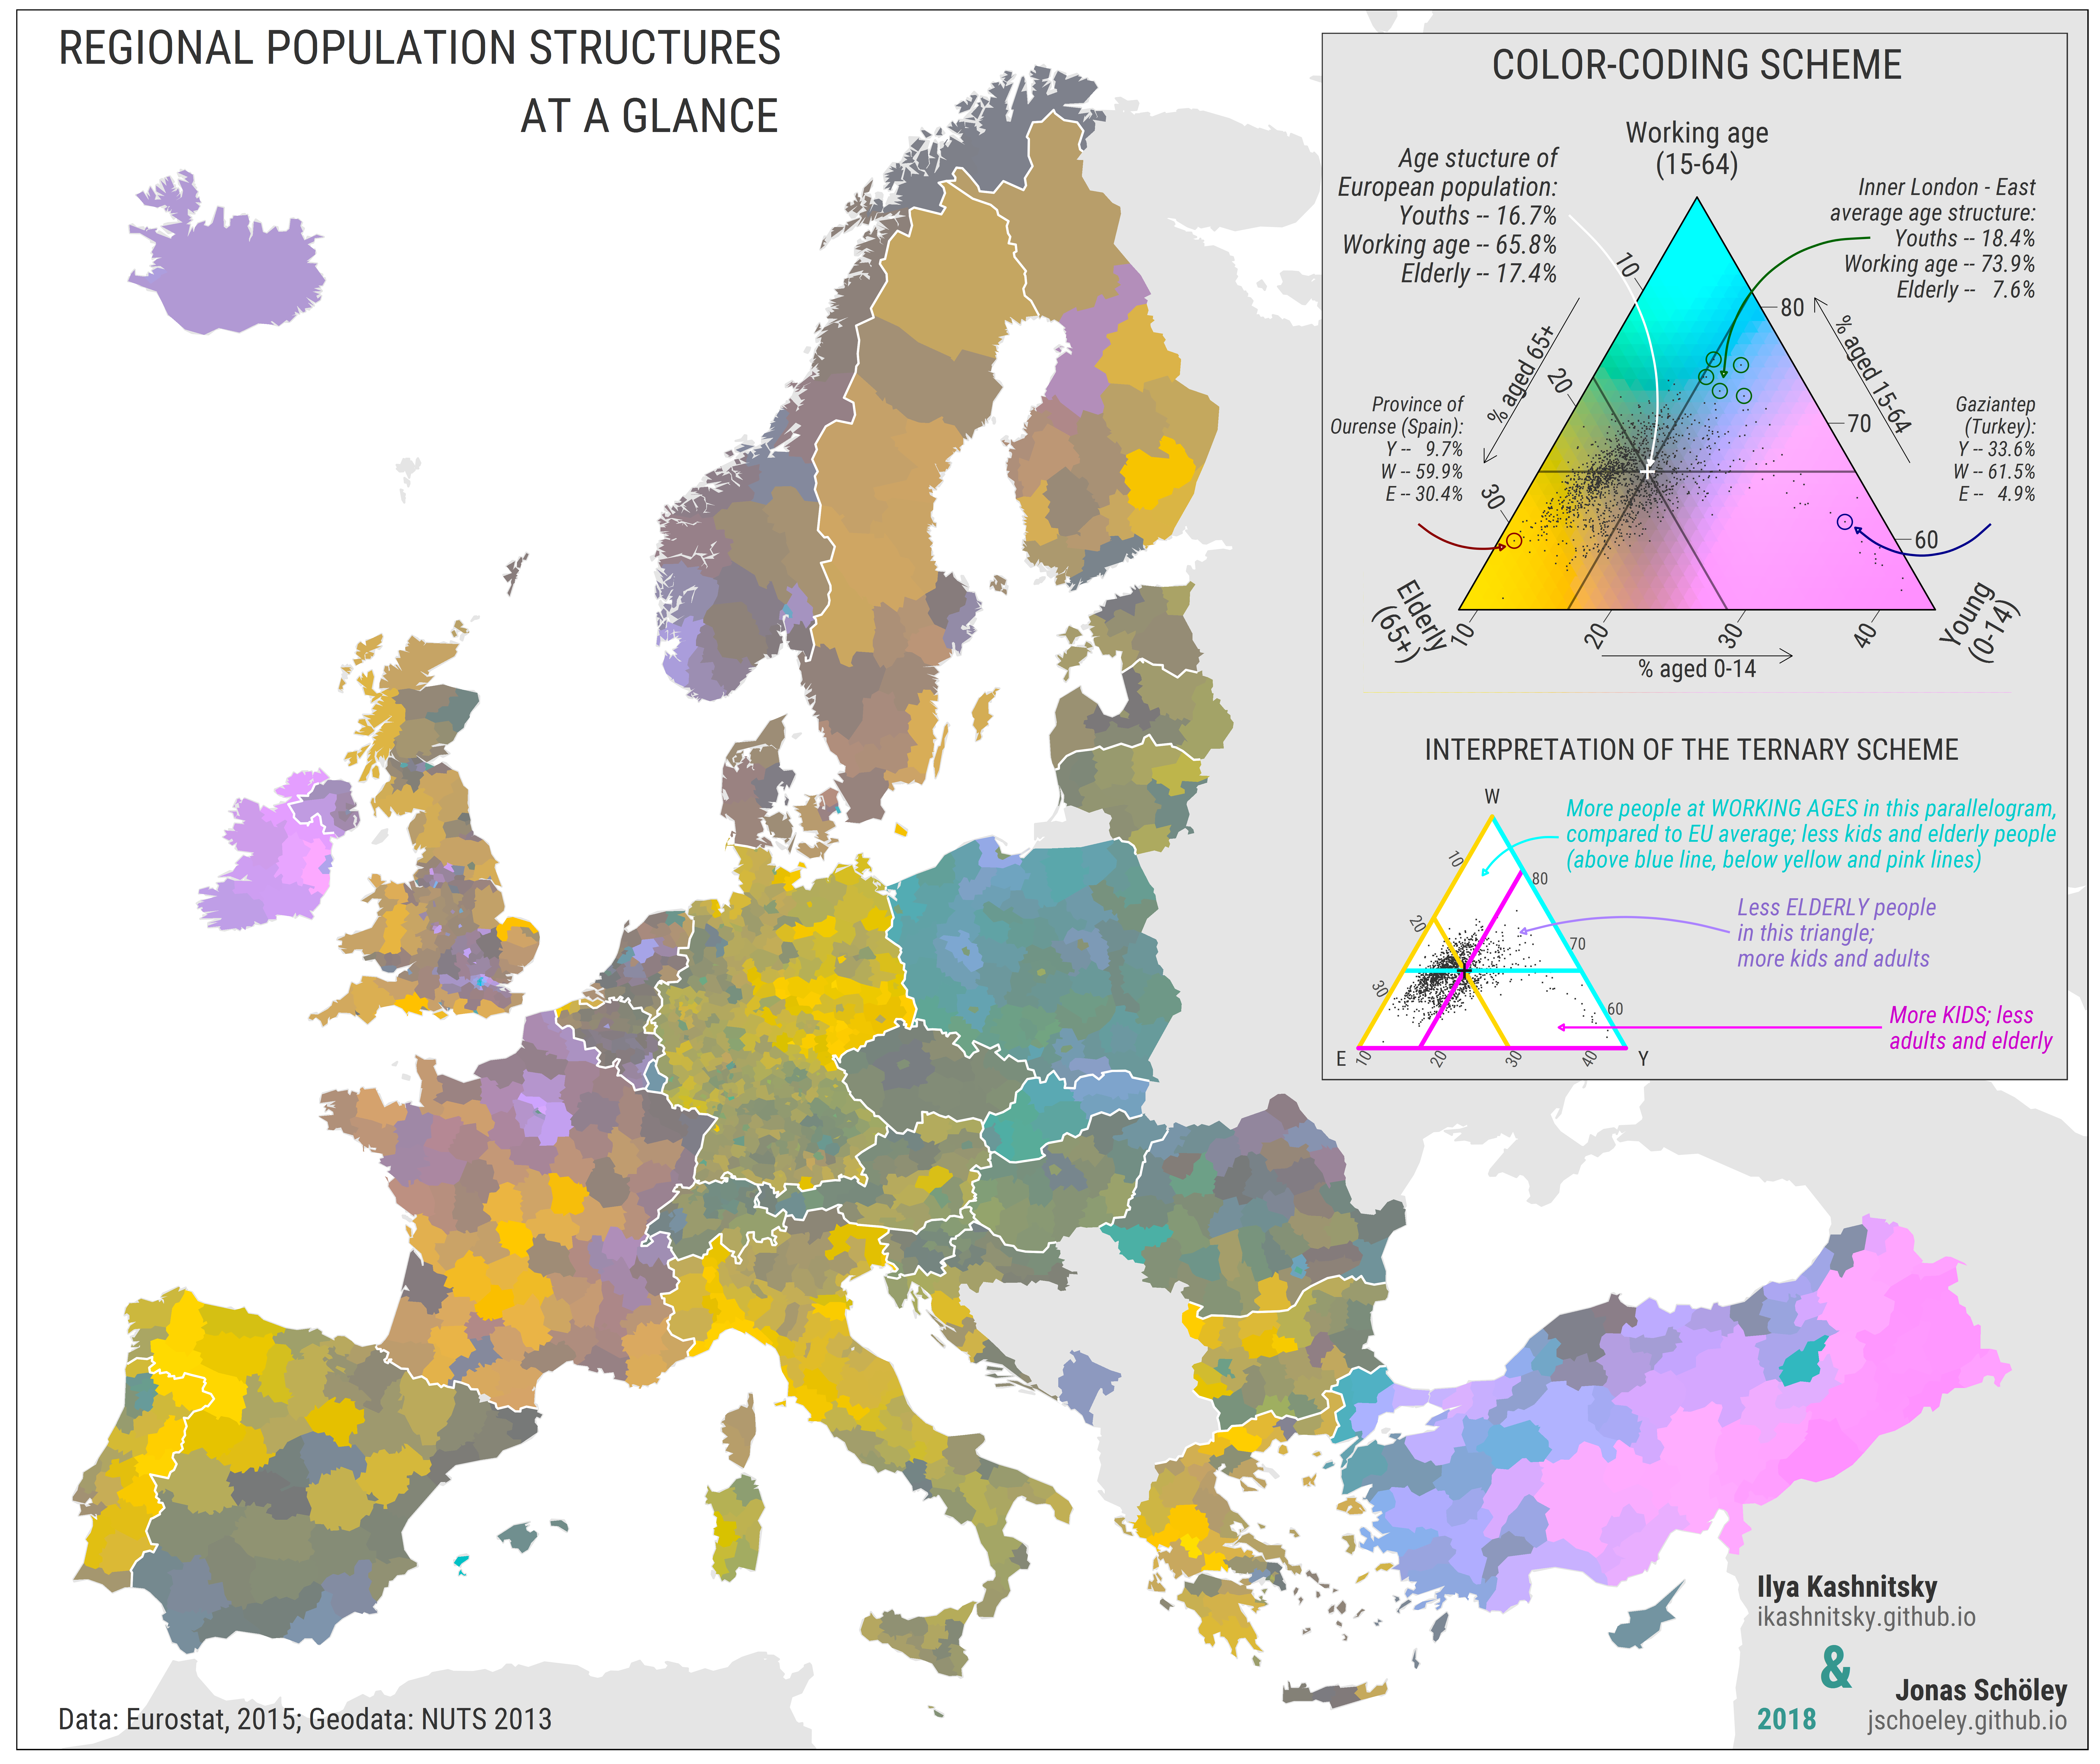 Best Countries In Europe To Retire: Europe: Regional Population Structures At A Glance